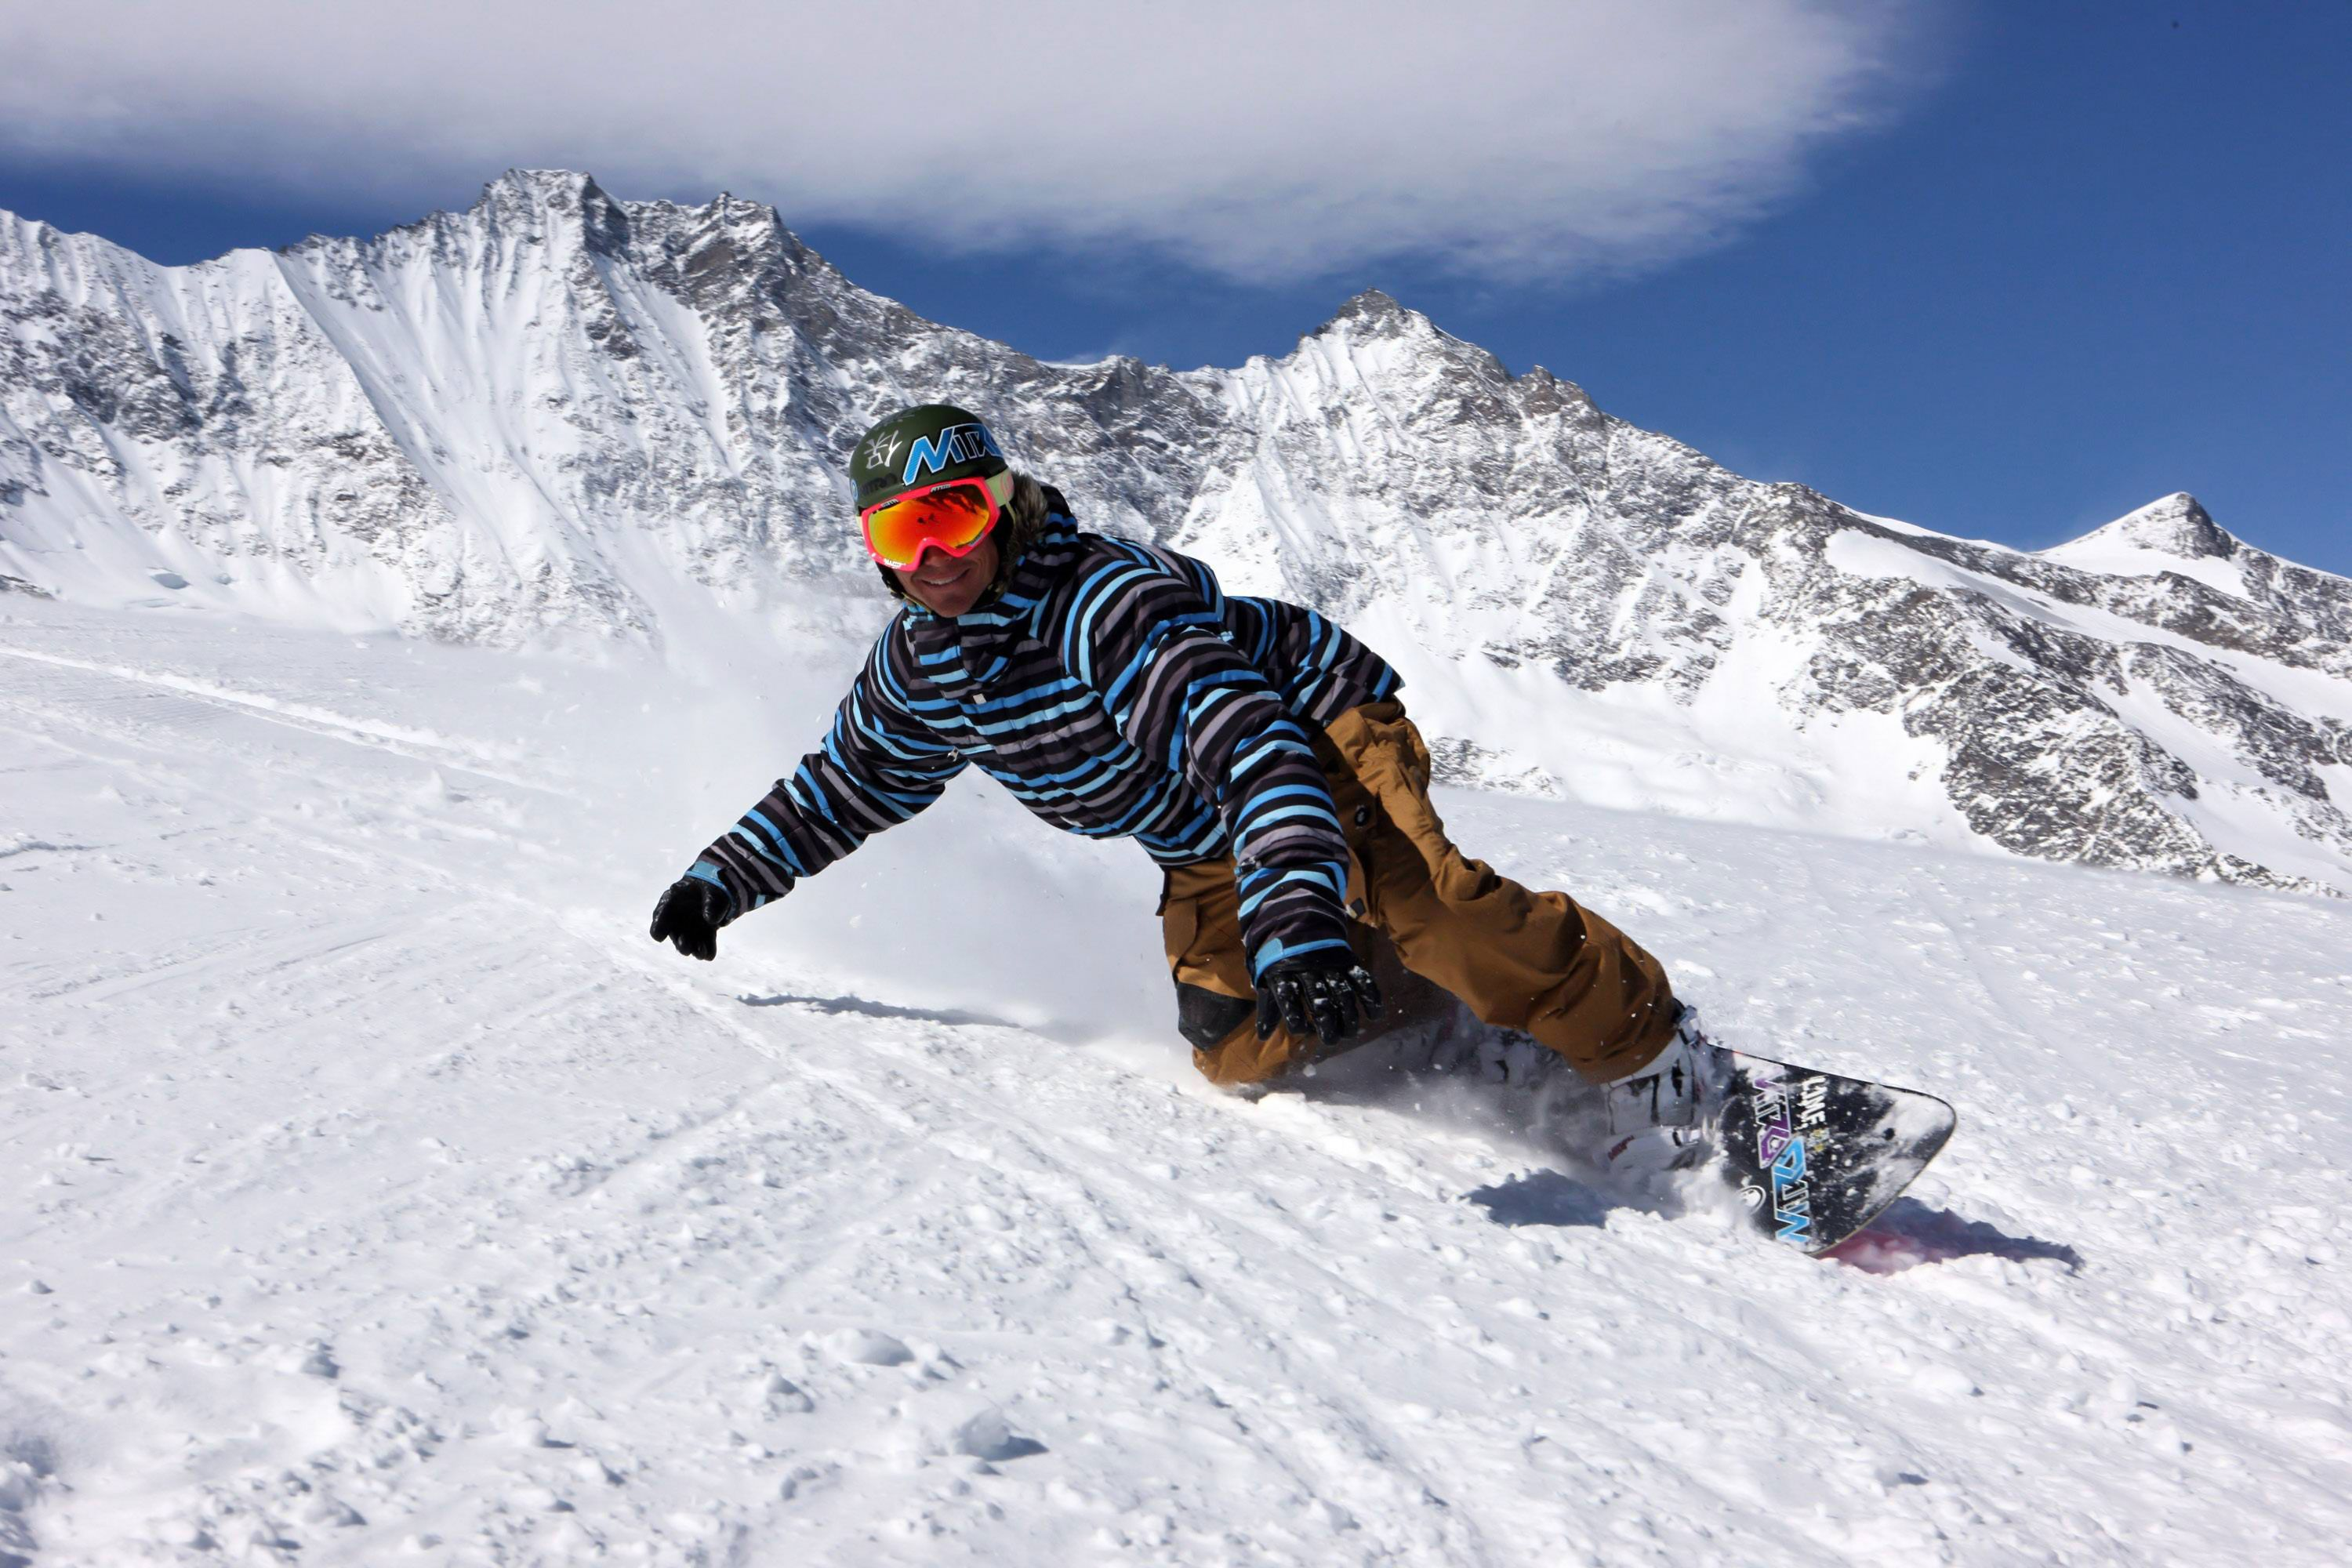 sweden the perfect place to enjoy snowboarding skiing and other outdoor activities on the snow 10 best snow resorts families can try other fun activities at the who managed the snowboarding program for 13 years other family-fun activities.